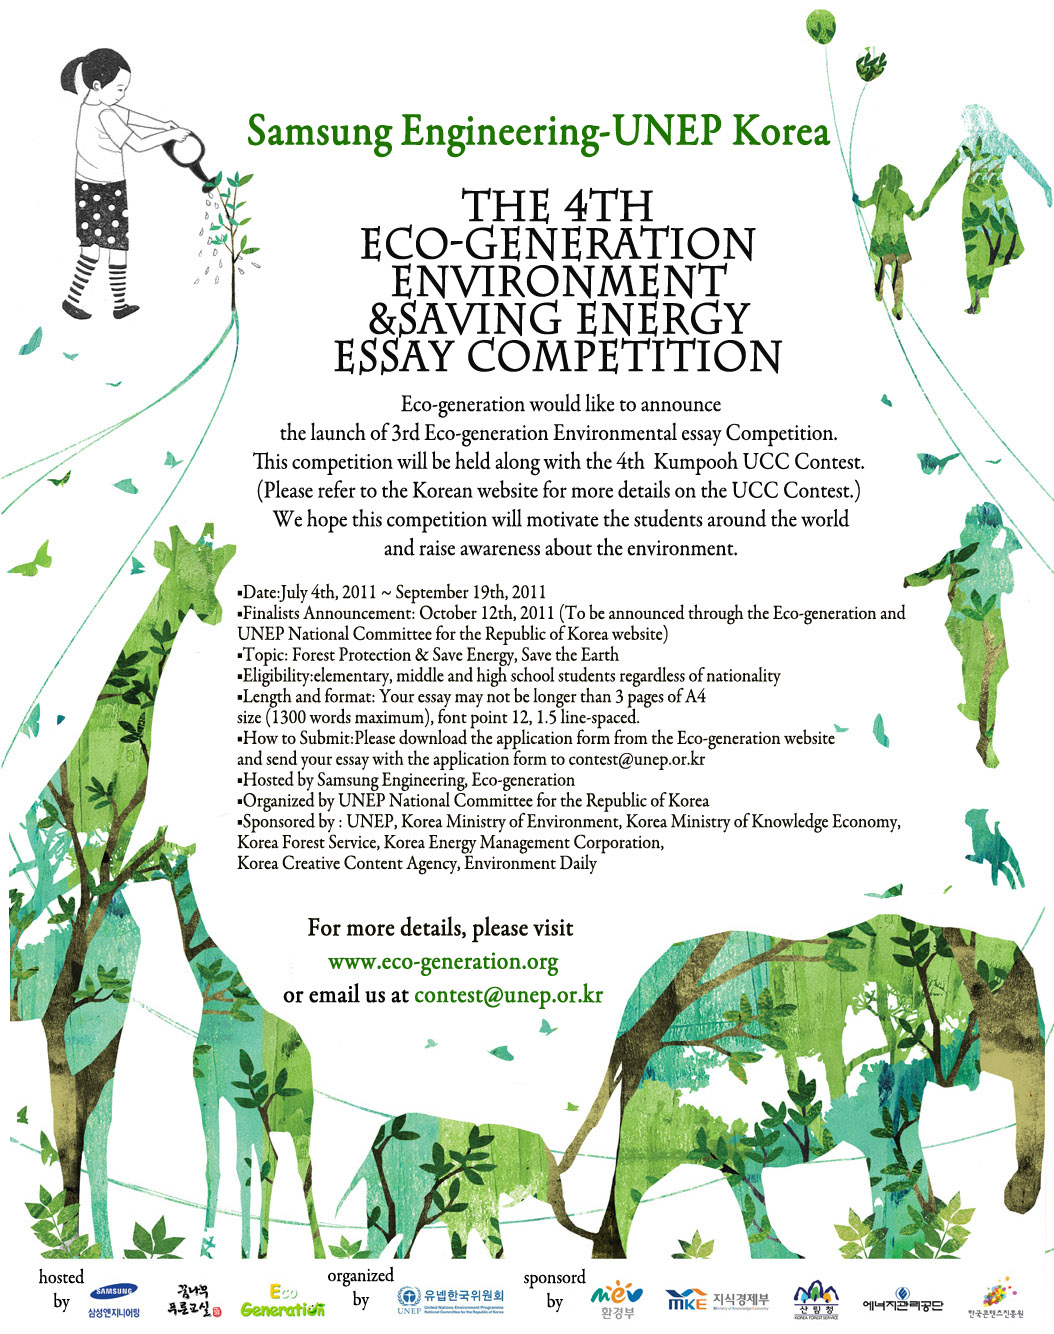 the 4th eco generation environmental essay competition samsung engineering unep korea the 4th eco generation environment saving energy essay